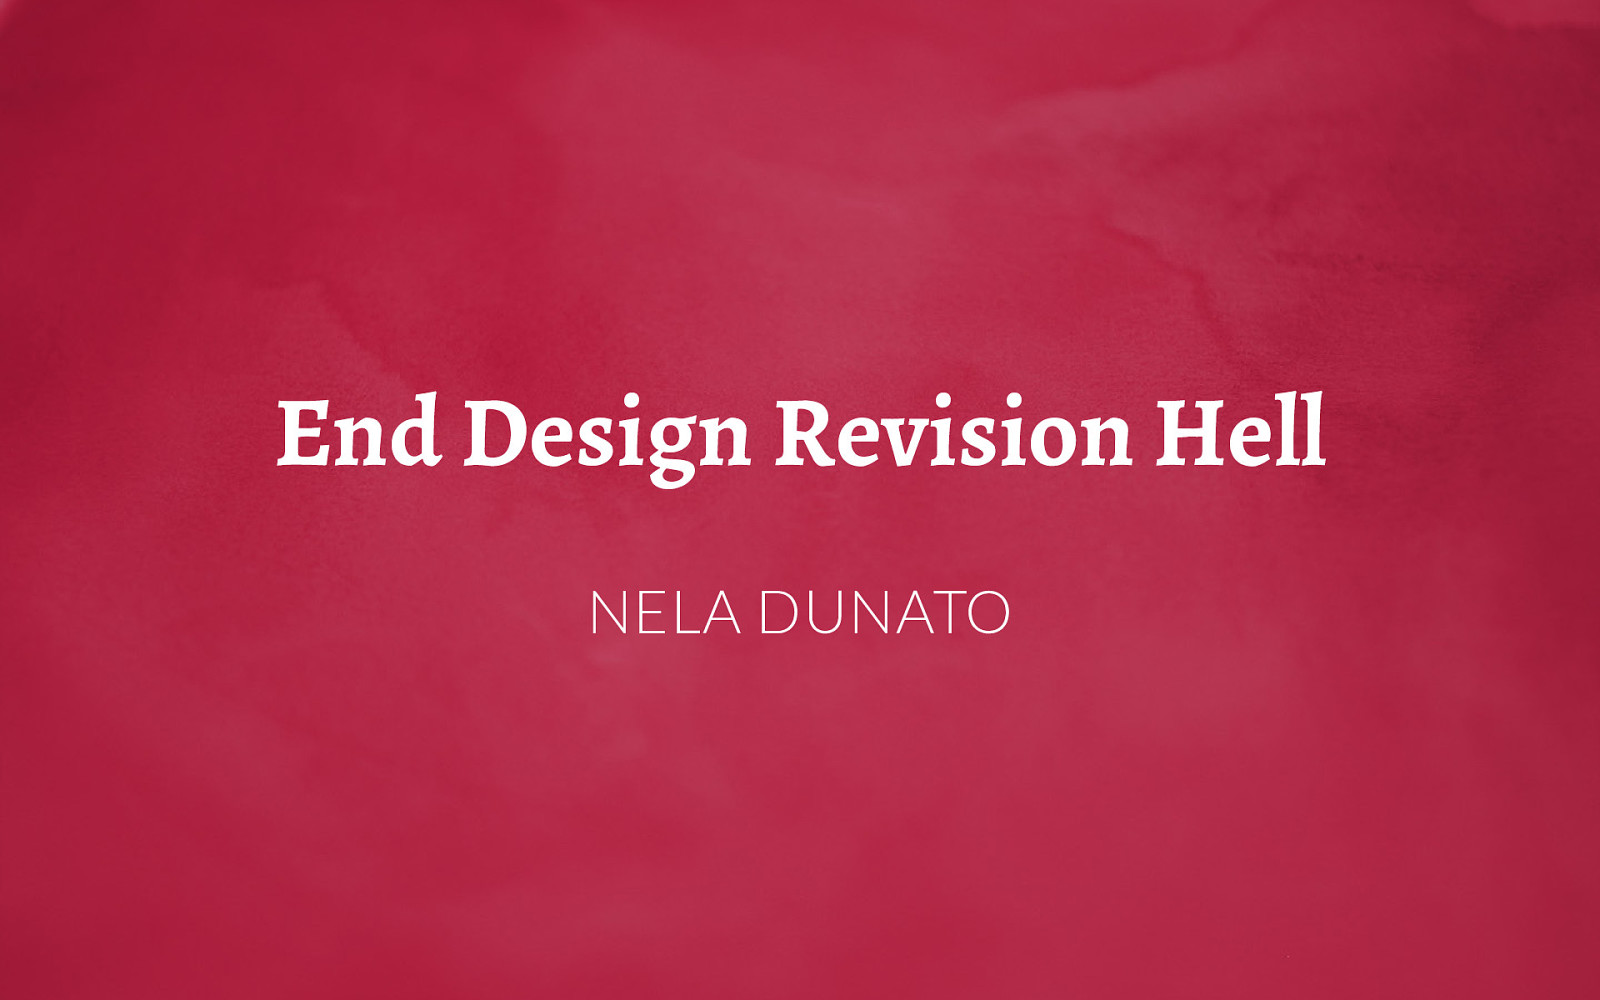 End Design Revision Hell